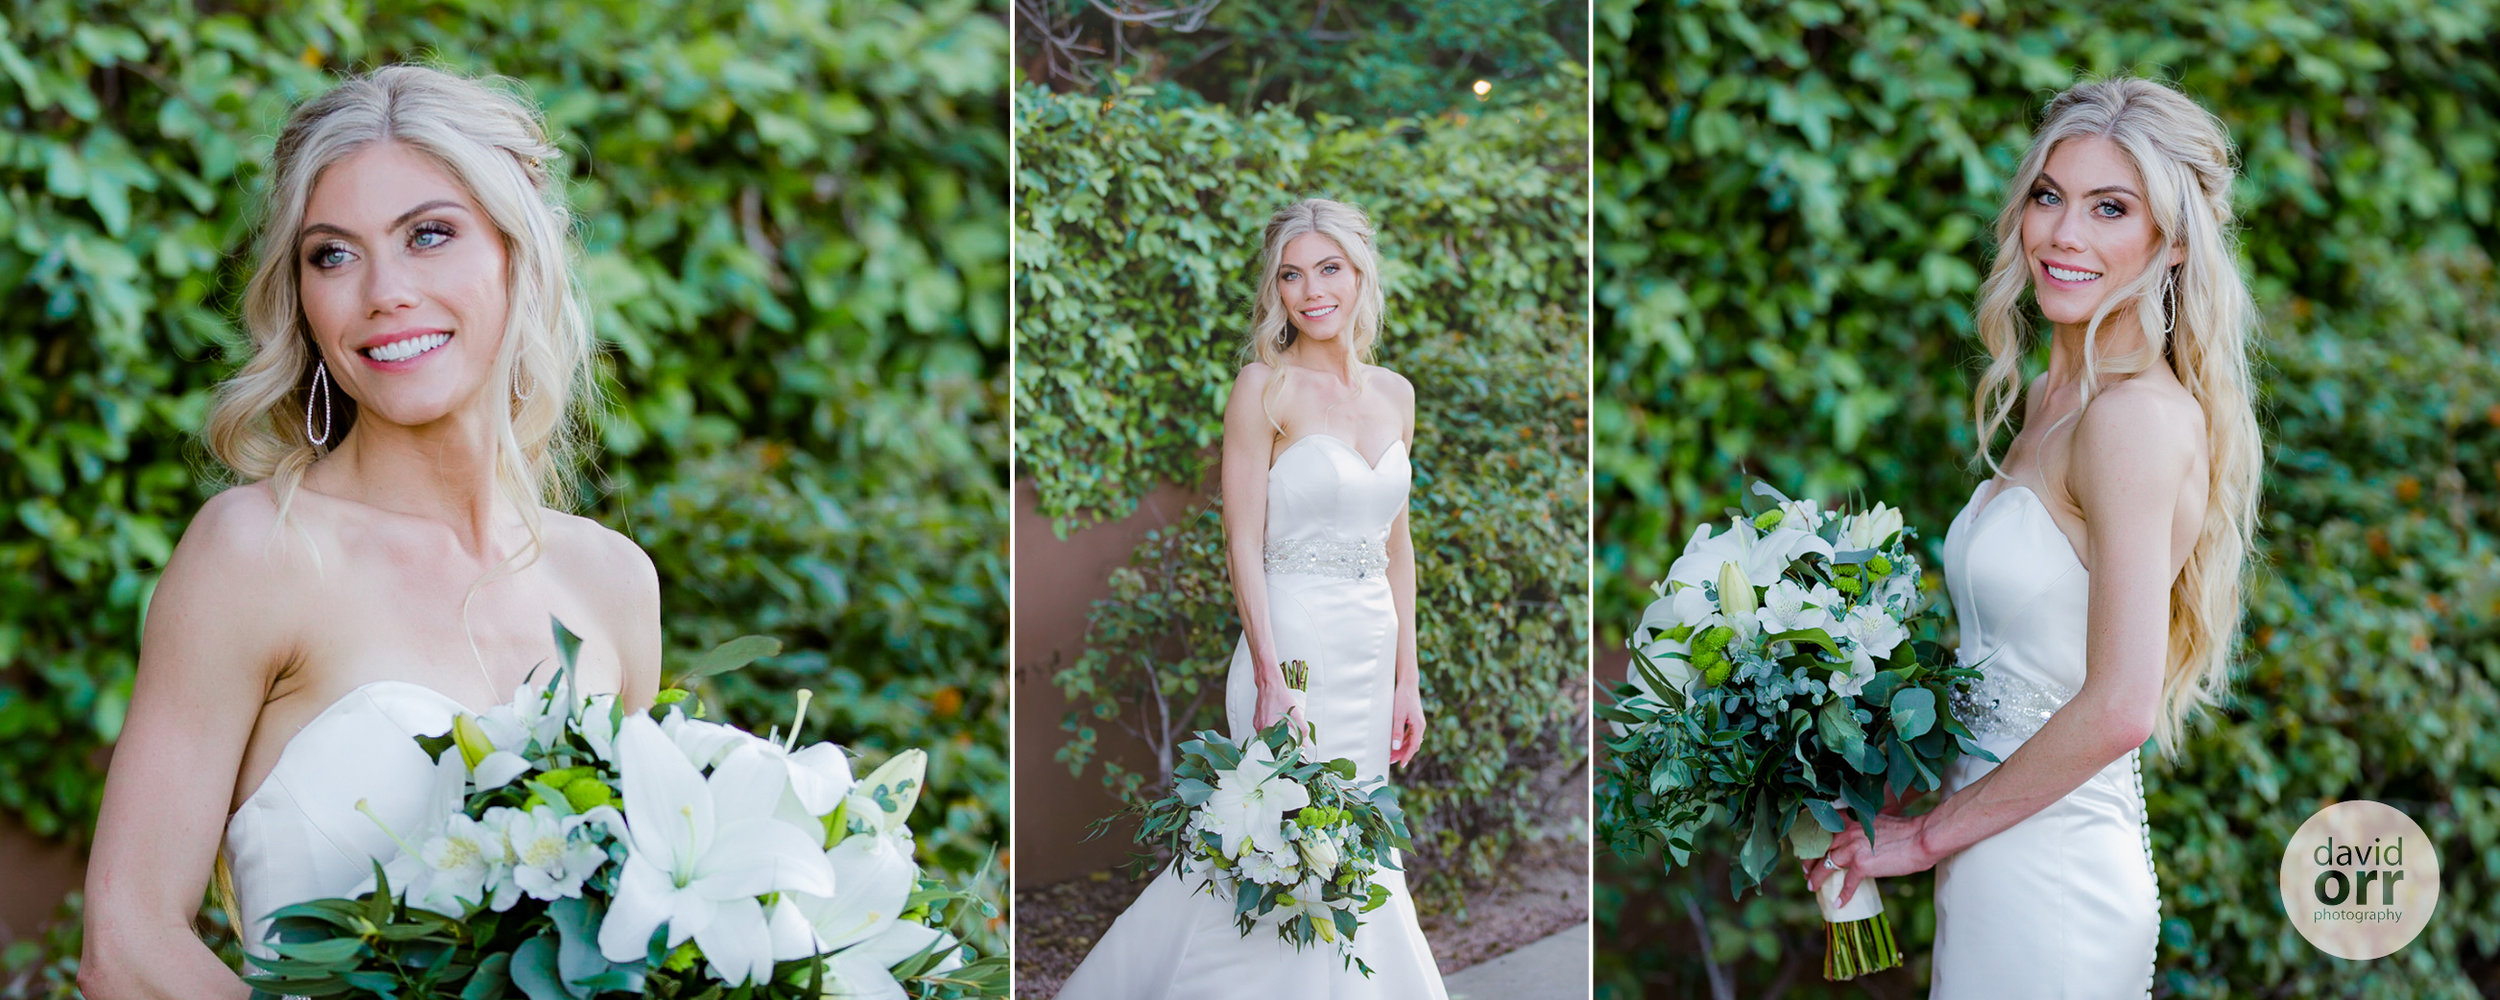 DavidOrrPhotography_Mesa-Regency-Garden-Wedding1.jpg